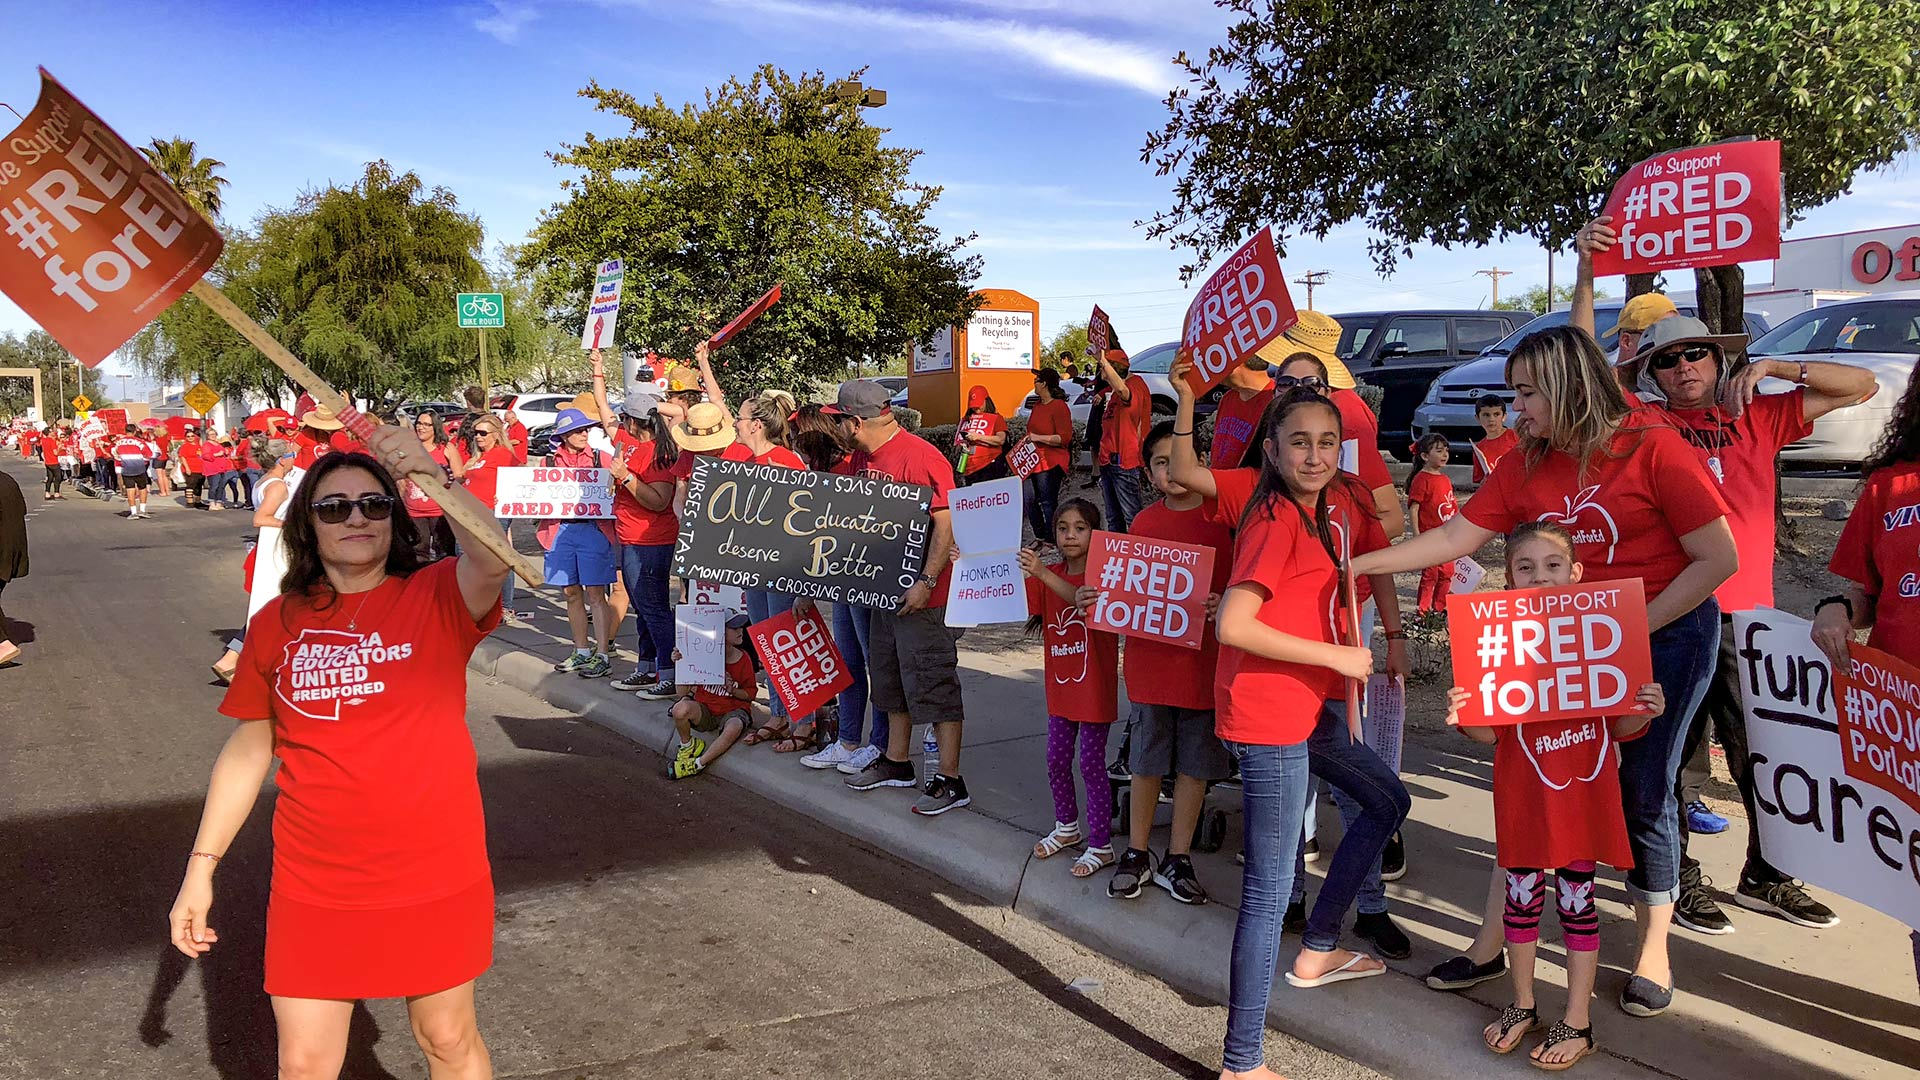 Redfored teachers educators hero